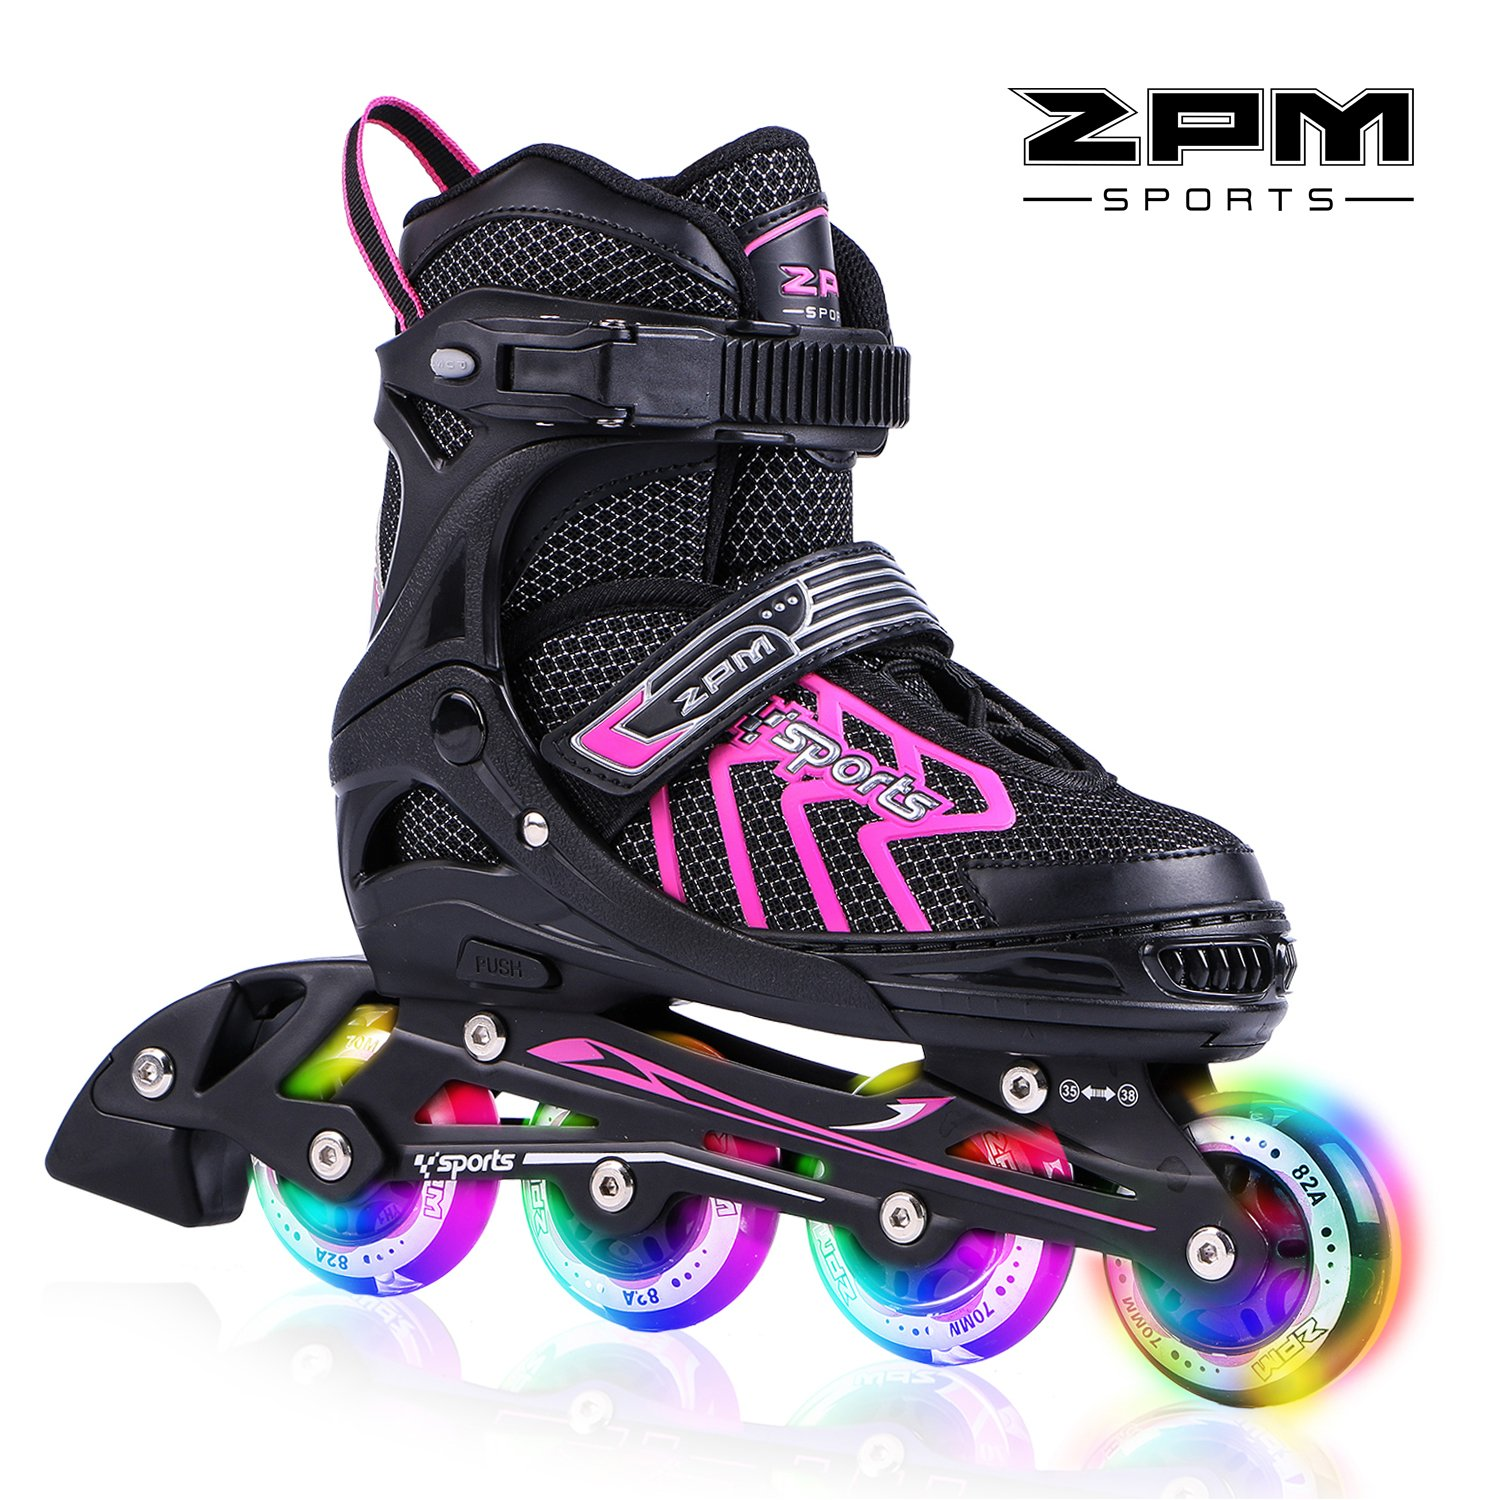 2PM SPORTS Brice Pink Adjustable Illuminating Inline Skates with Full Light Up LED Wheels, Fun Flashing rollerskates for Kids Girls and Boys